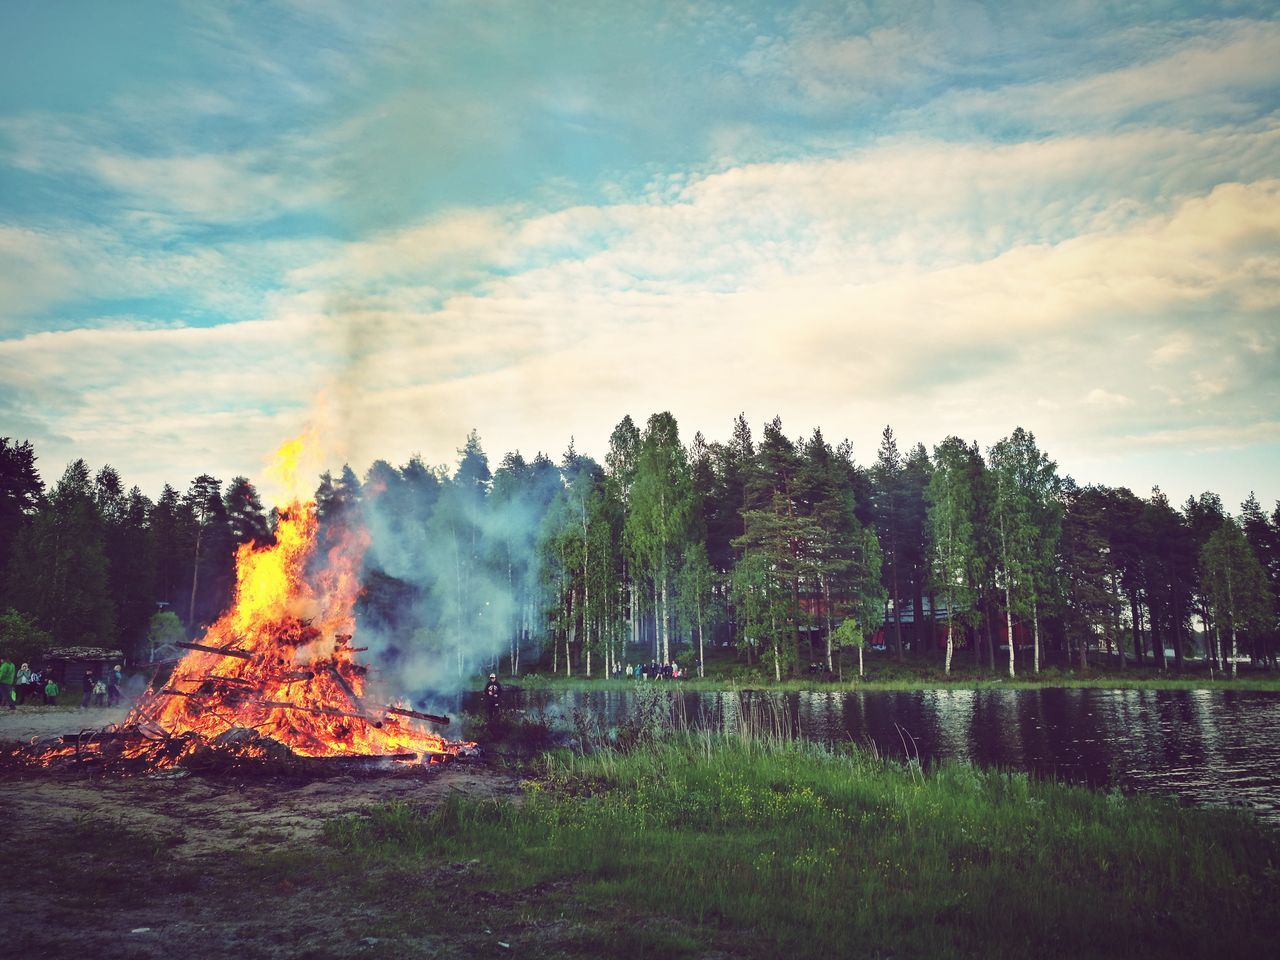 Tree Heat - Temperature Cloud - Sky Outdoors Water Nature Day People Bonfire Midsummer Night Midsummer Finnish Lifestyle Life In Finland